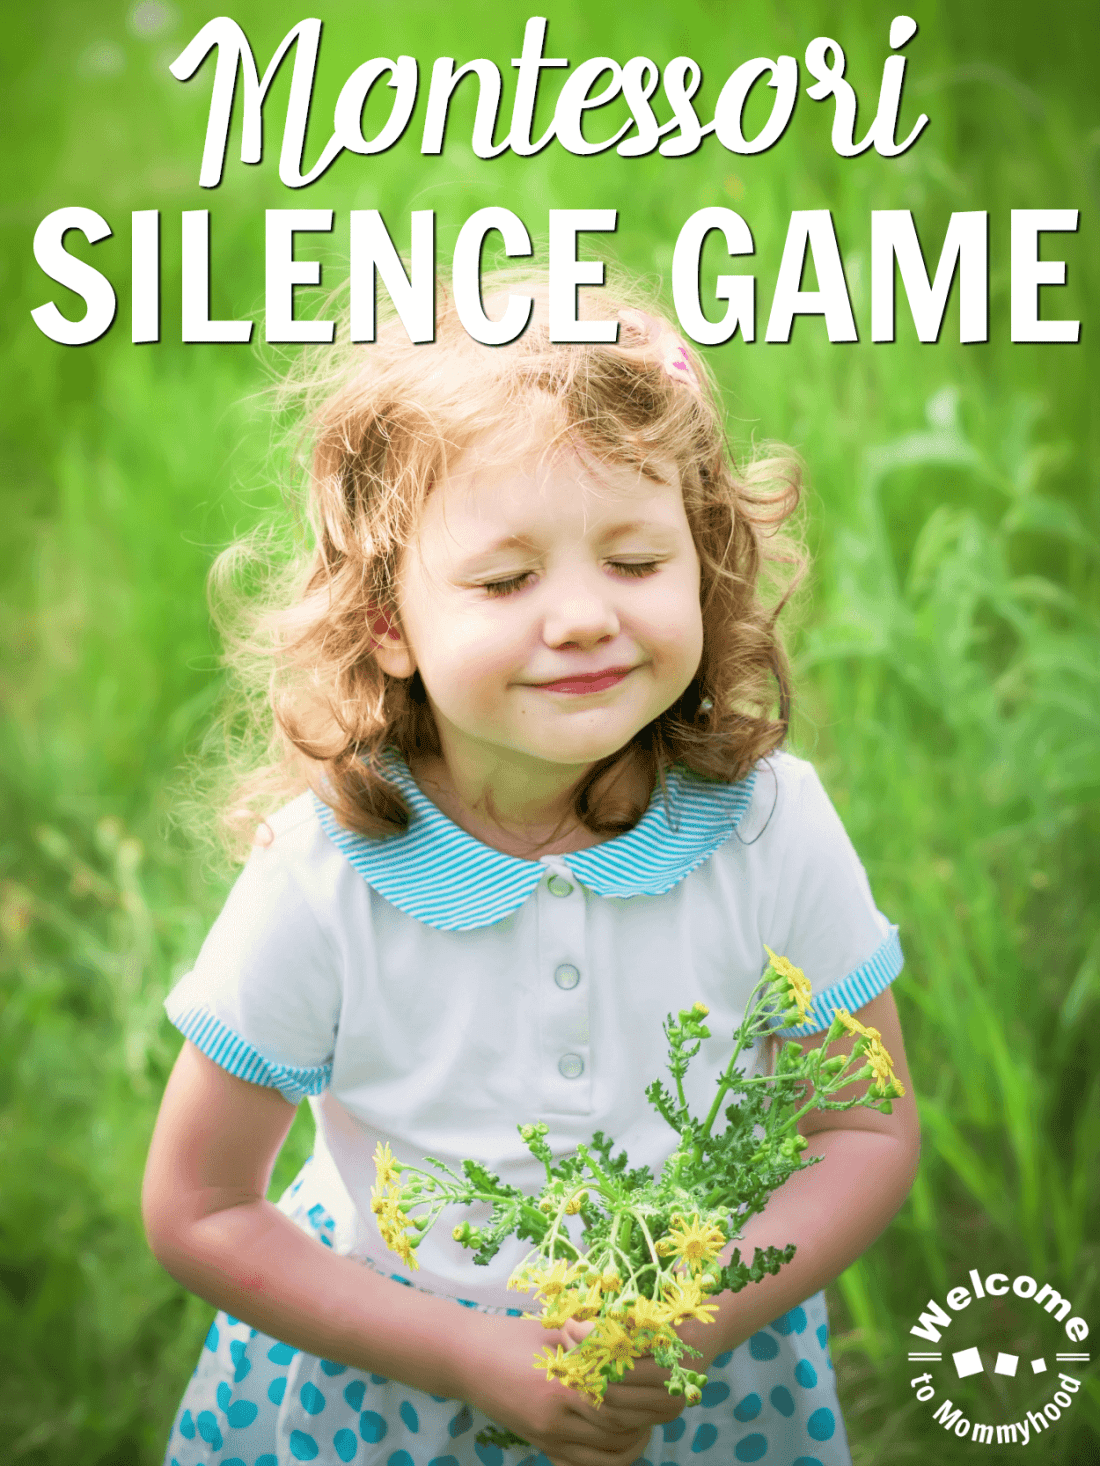 Montessori Silence Game To Teach Children Concentration Self